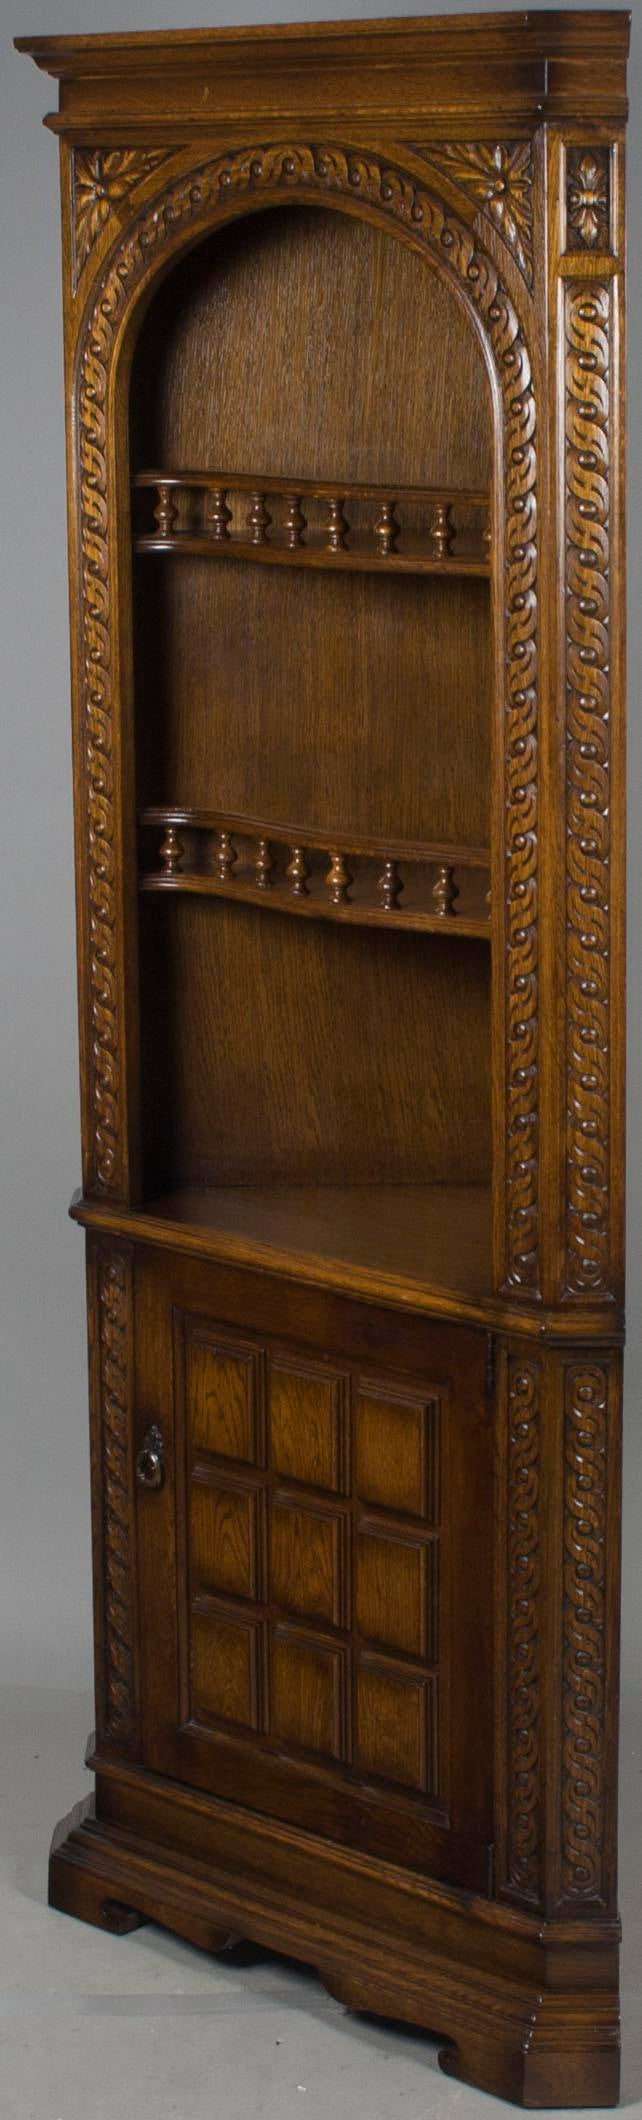 This Stunning Corner Hutch Was Made In England Around The Year 1980. The  Arched,